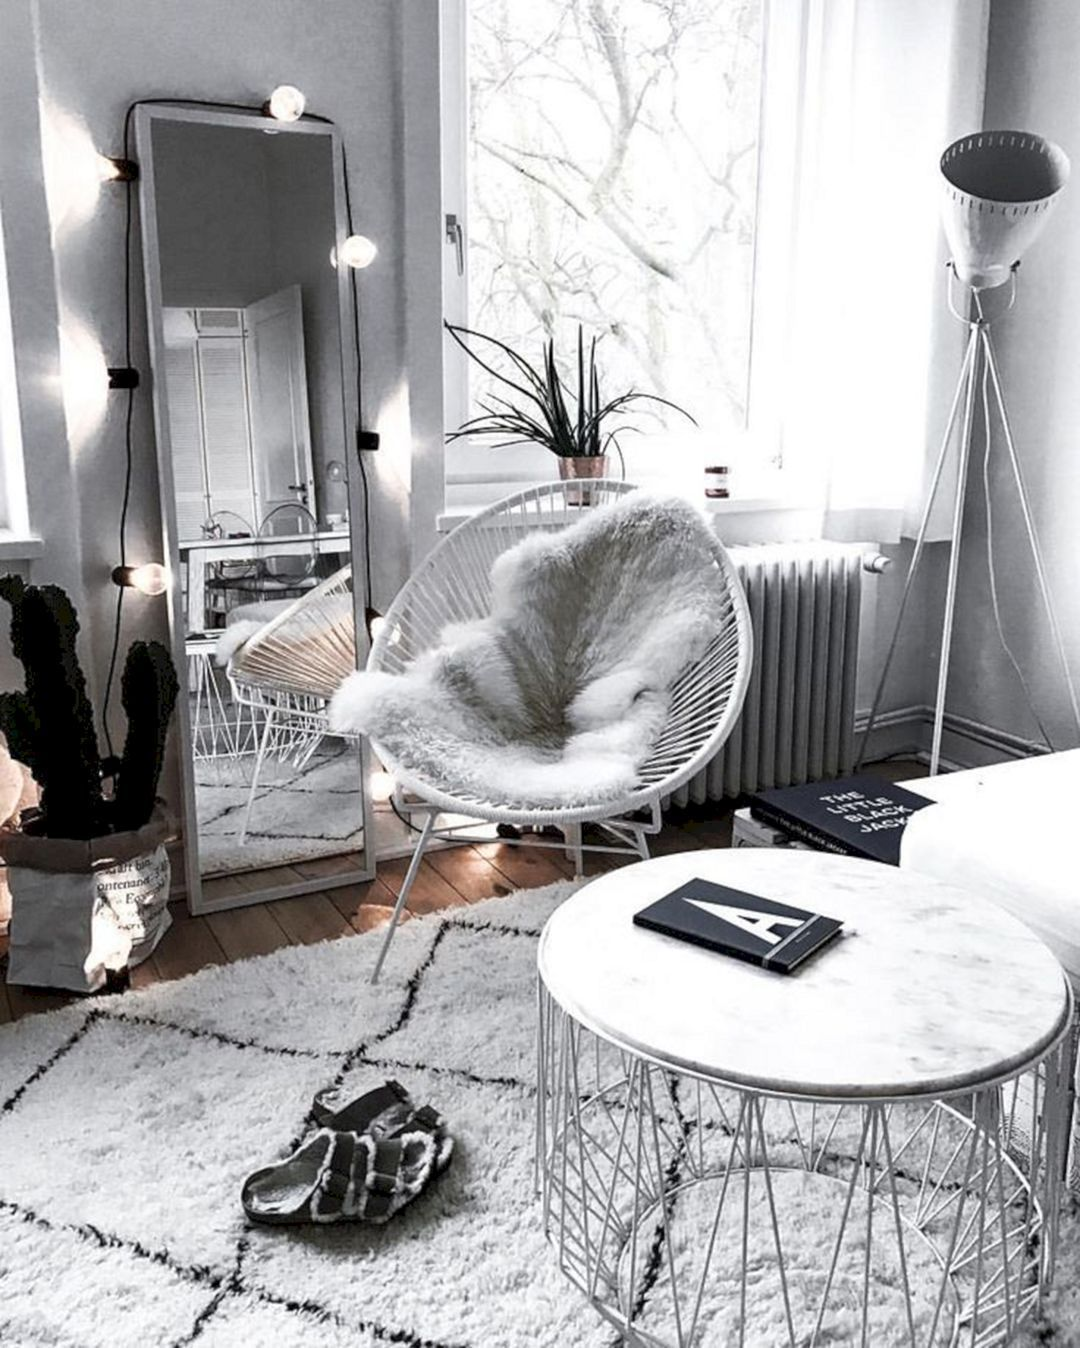 Aesthetic Room Decorations Ideas Aesthetic Room Decorations Ideas Design Ideas And Photos Rustic Living Room Furniture Home Decor Bedroom Bedroom Interior Gray aesthetic room pictures